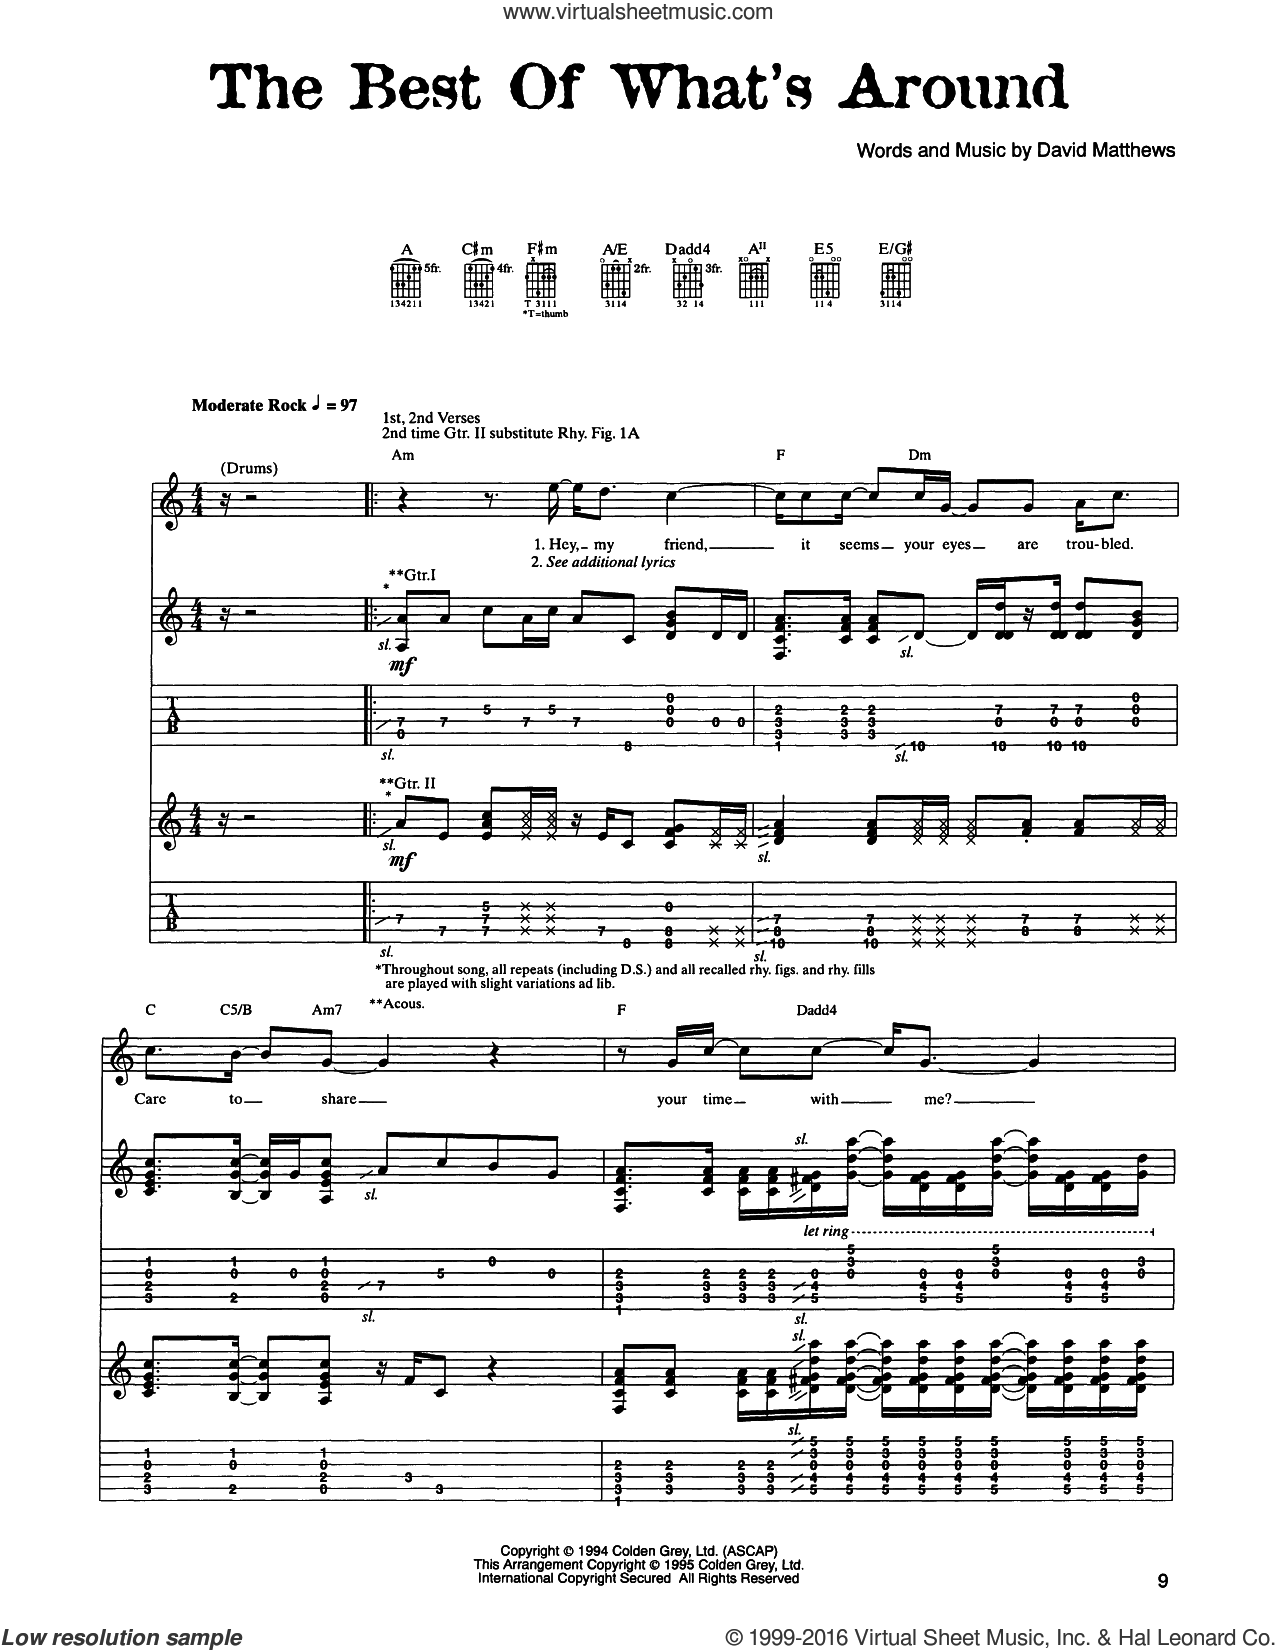 The Best Of What's Around sheet music for guitar (tablature) by Dave Matthews Band. Score Image Preview.